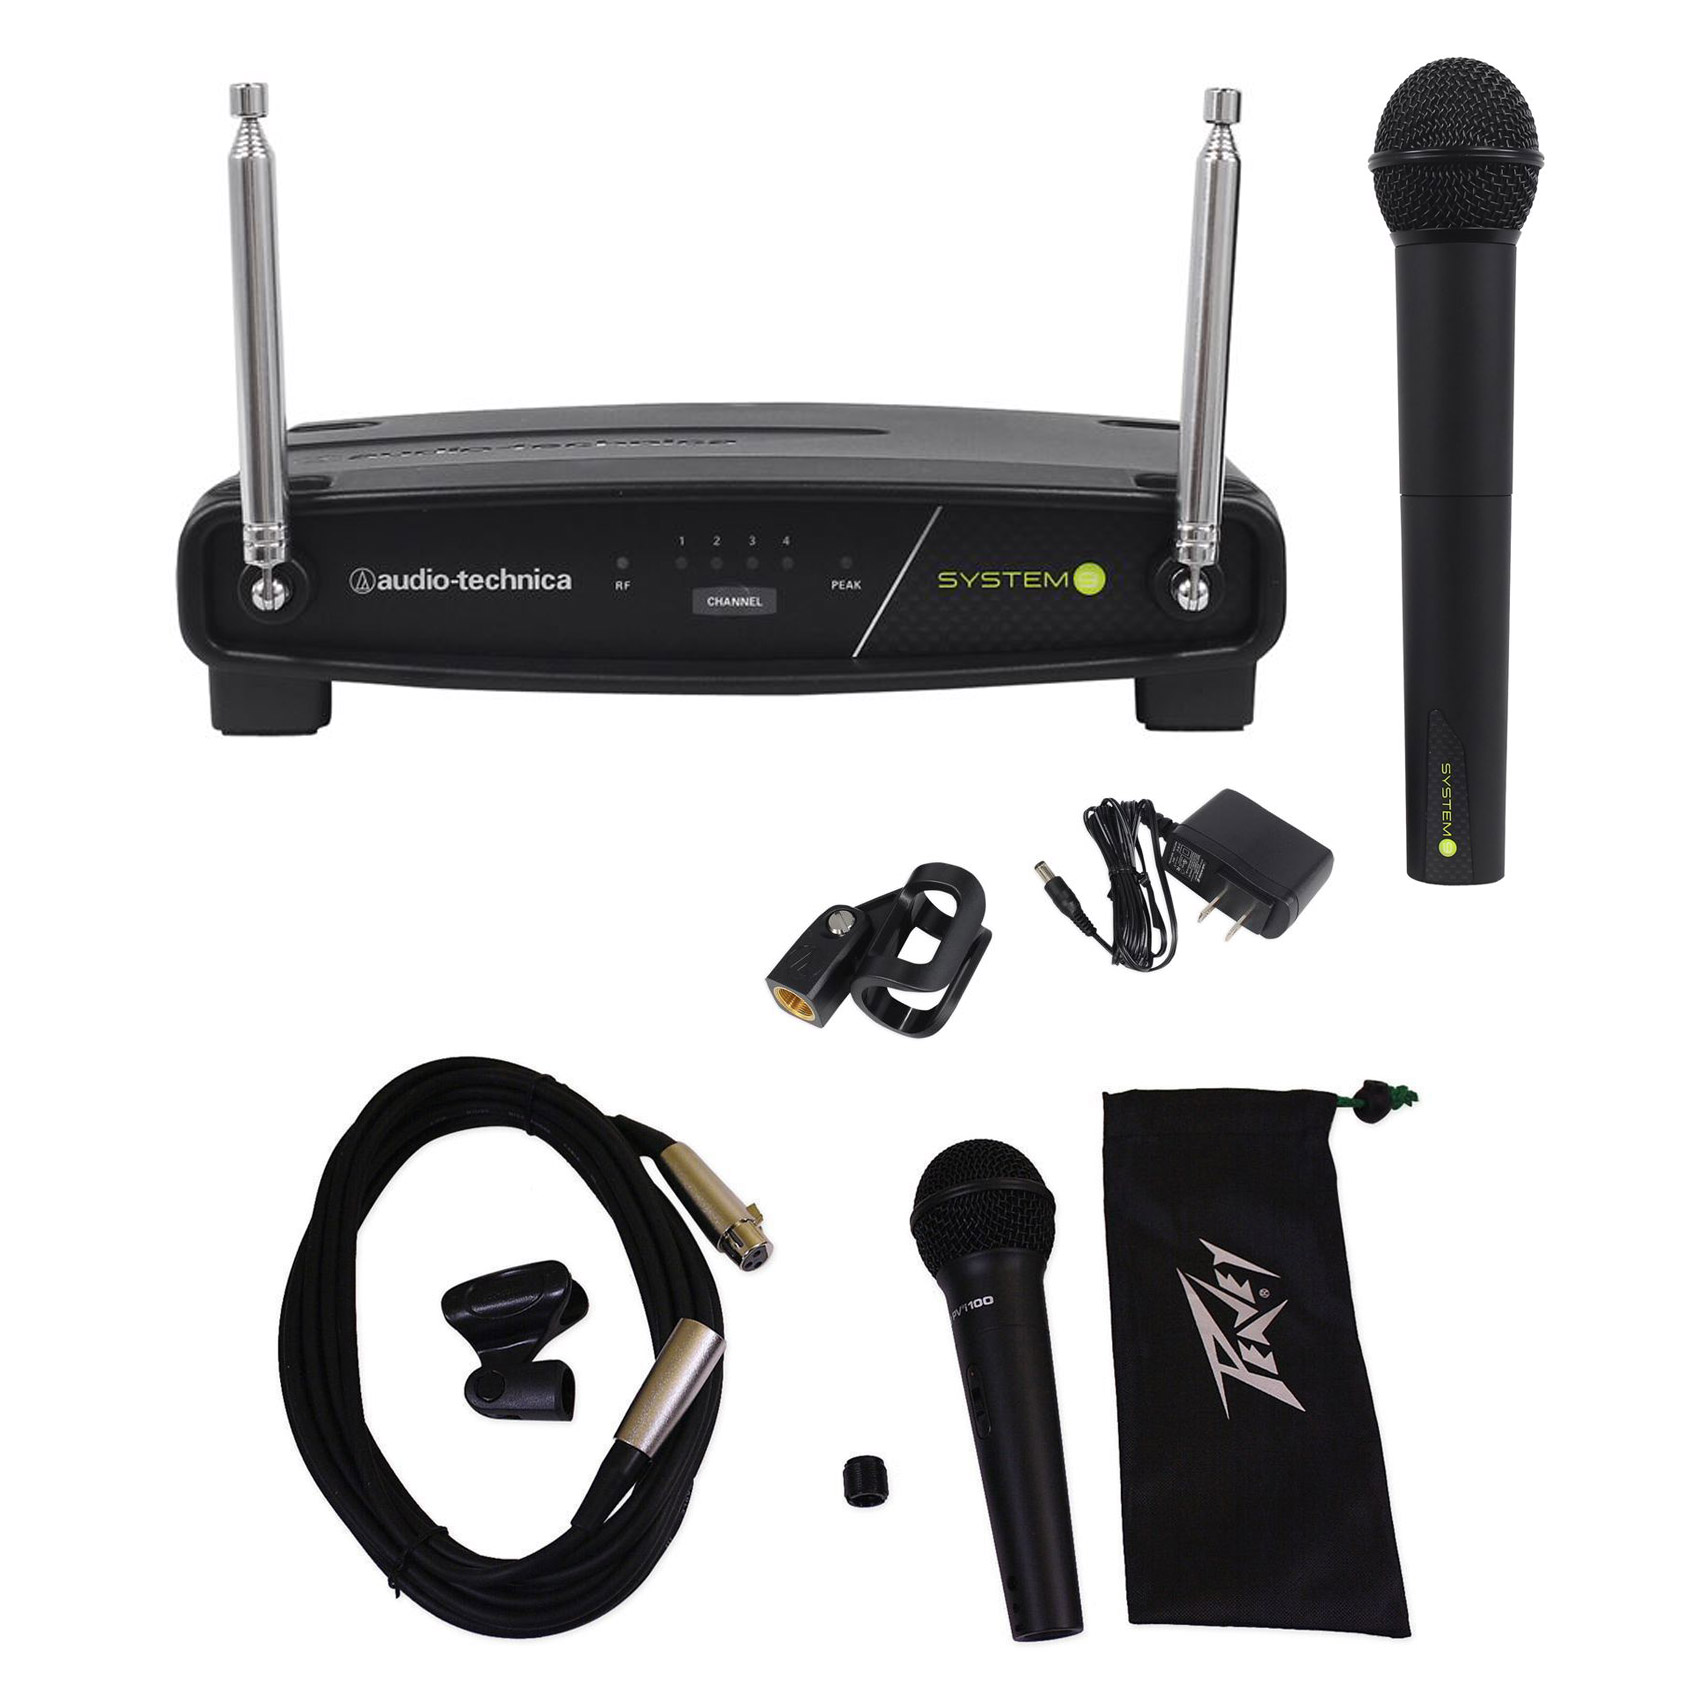 Audio Technica ATW-902 9 VHF Wireless Microphone System+Xtra Mic Case Clip Cable by Audio Technica